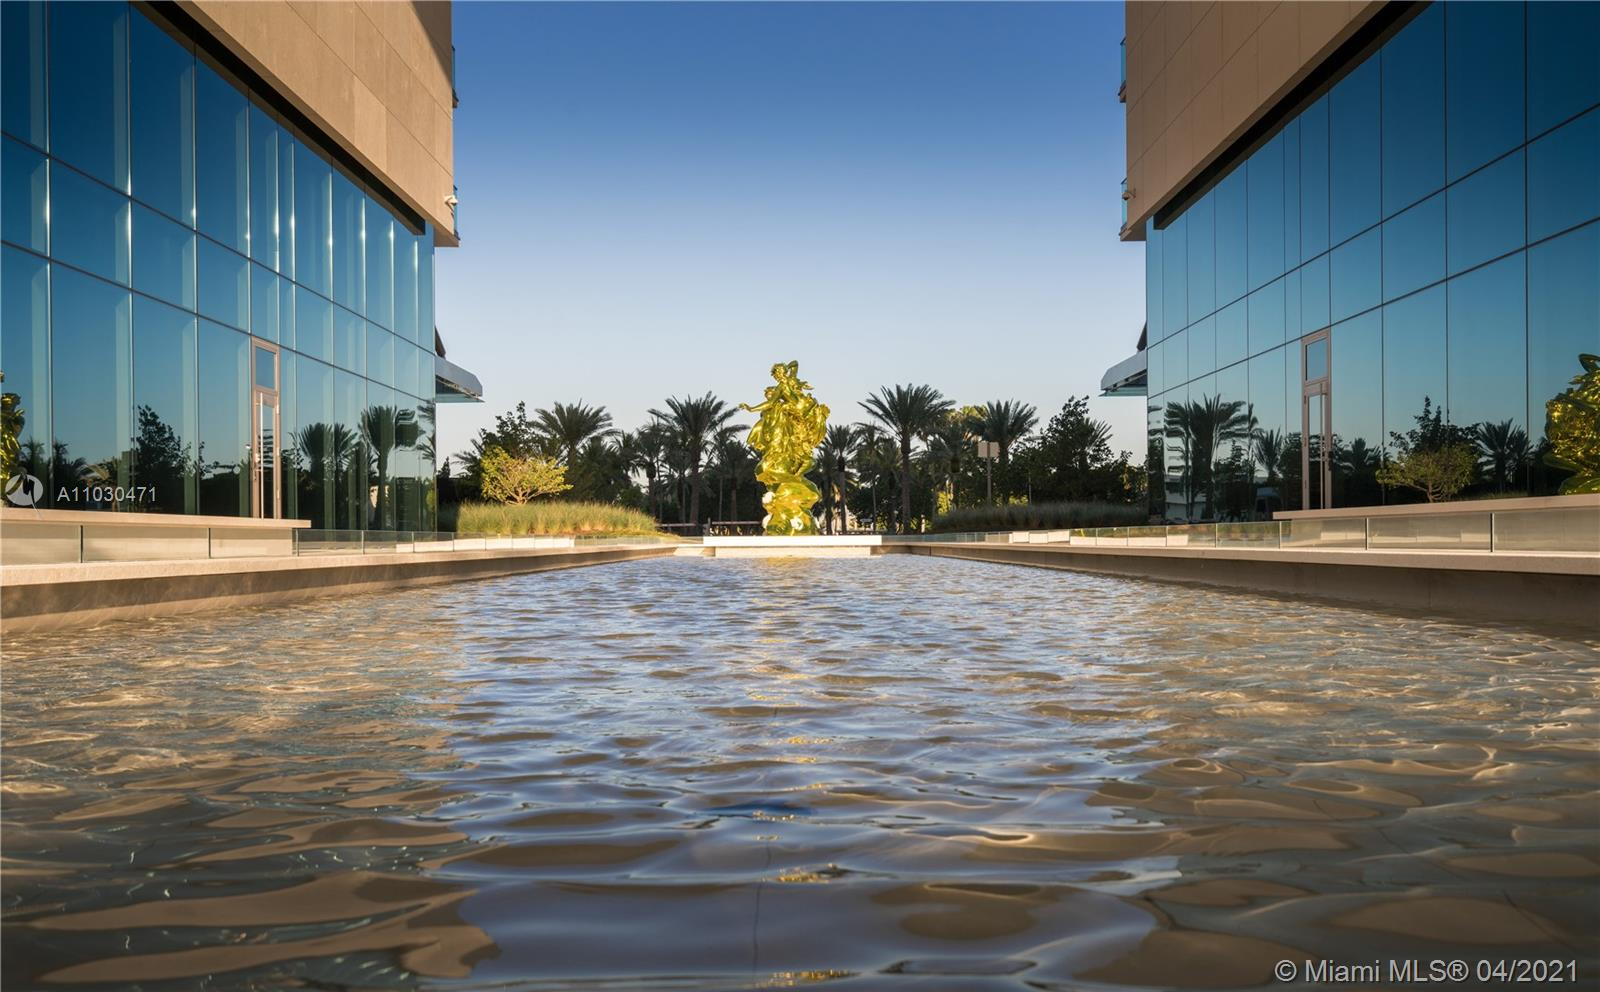 Oceana Bal Harbour -07 line, located above the breezeway with amazing views of Bal Harbour Marina,  Bay and Downtown Miami. Interiors by famed Italian Designer Piero Lissoni. Unit is finished with Italian marble floors floors and wood in bedrooms. Calacata marble floor in the bathrooms. Kitchen and bathrooms w/ Golden Calacata marble, Dada Montoni cabinets. Boffi Italian made bathtubs and washtubs, Gaggenau appliances, washer and dryer GE, Private Foyer. Oceana Bal Harbour is a luxury building with five stars amenities including two tennis courts professional in clay. Also, we have an impressive art collection including the most expensive living artist, Jeff Koons.